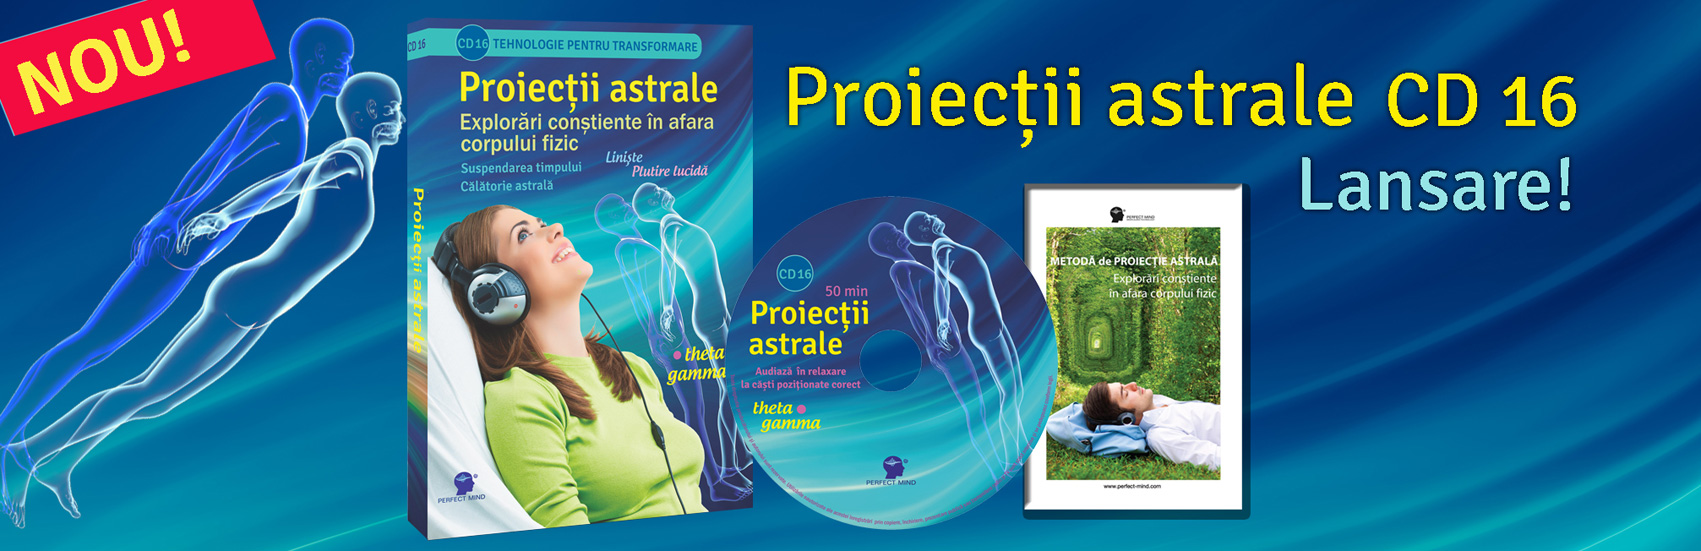 Proiectii astrale